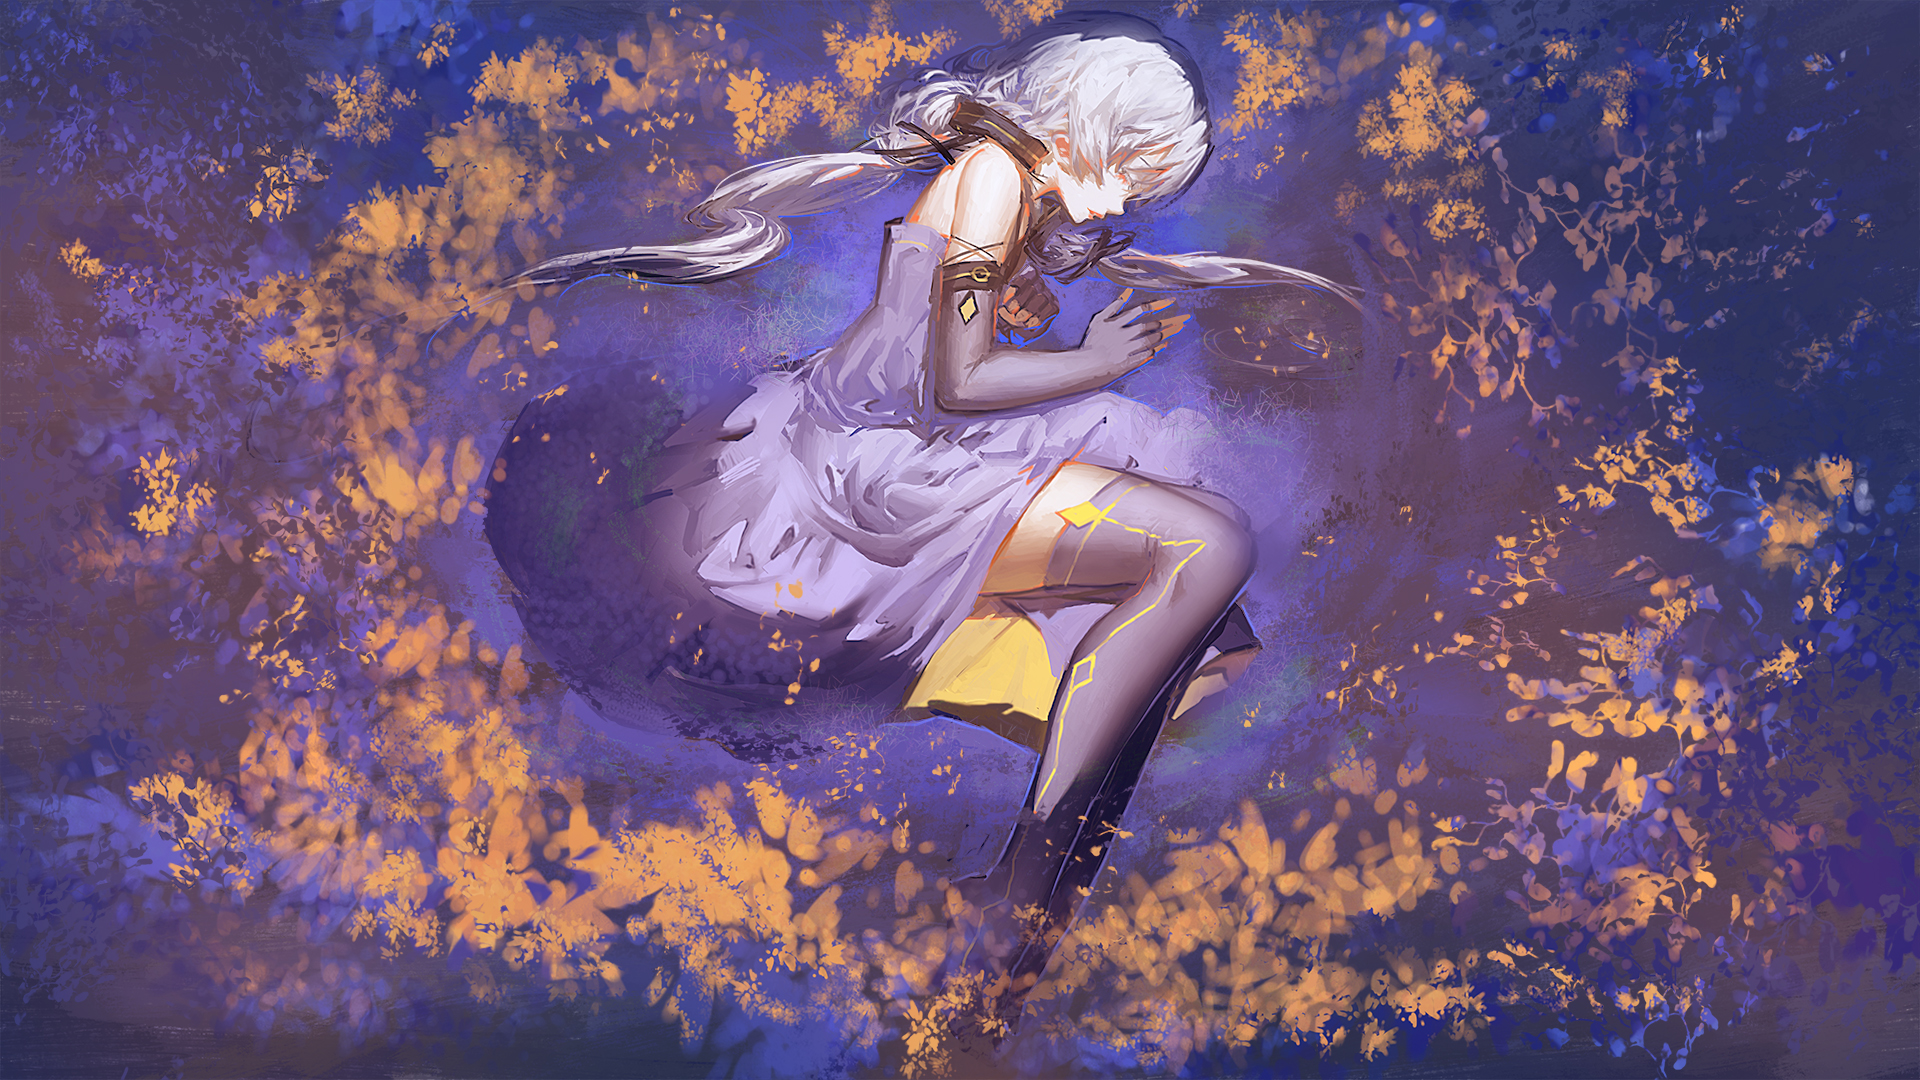 Stardust (VOCALOID), Wallpaper - Zerochan Anime Image Board